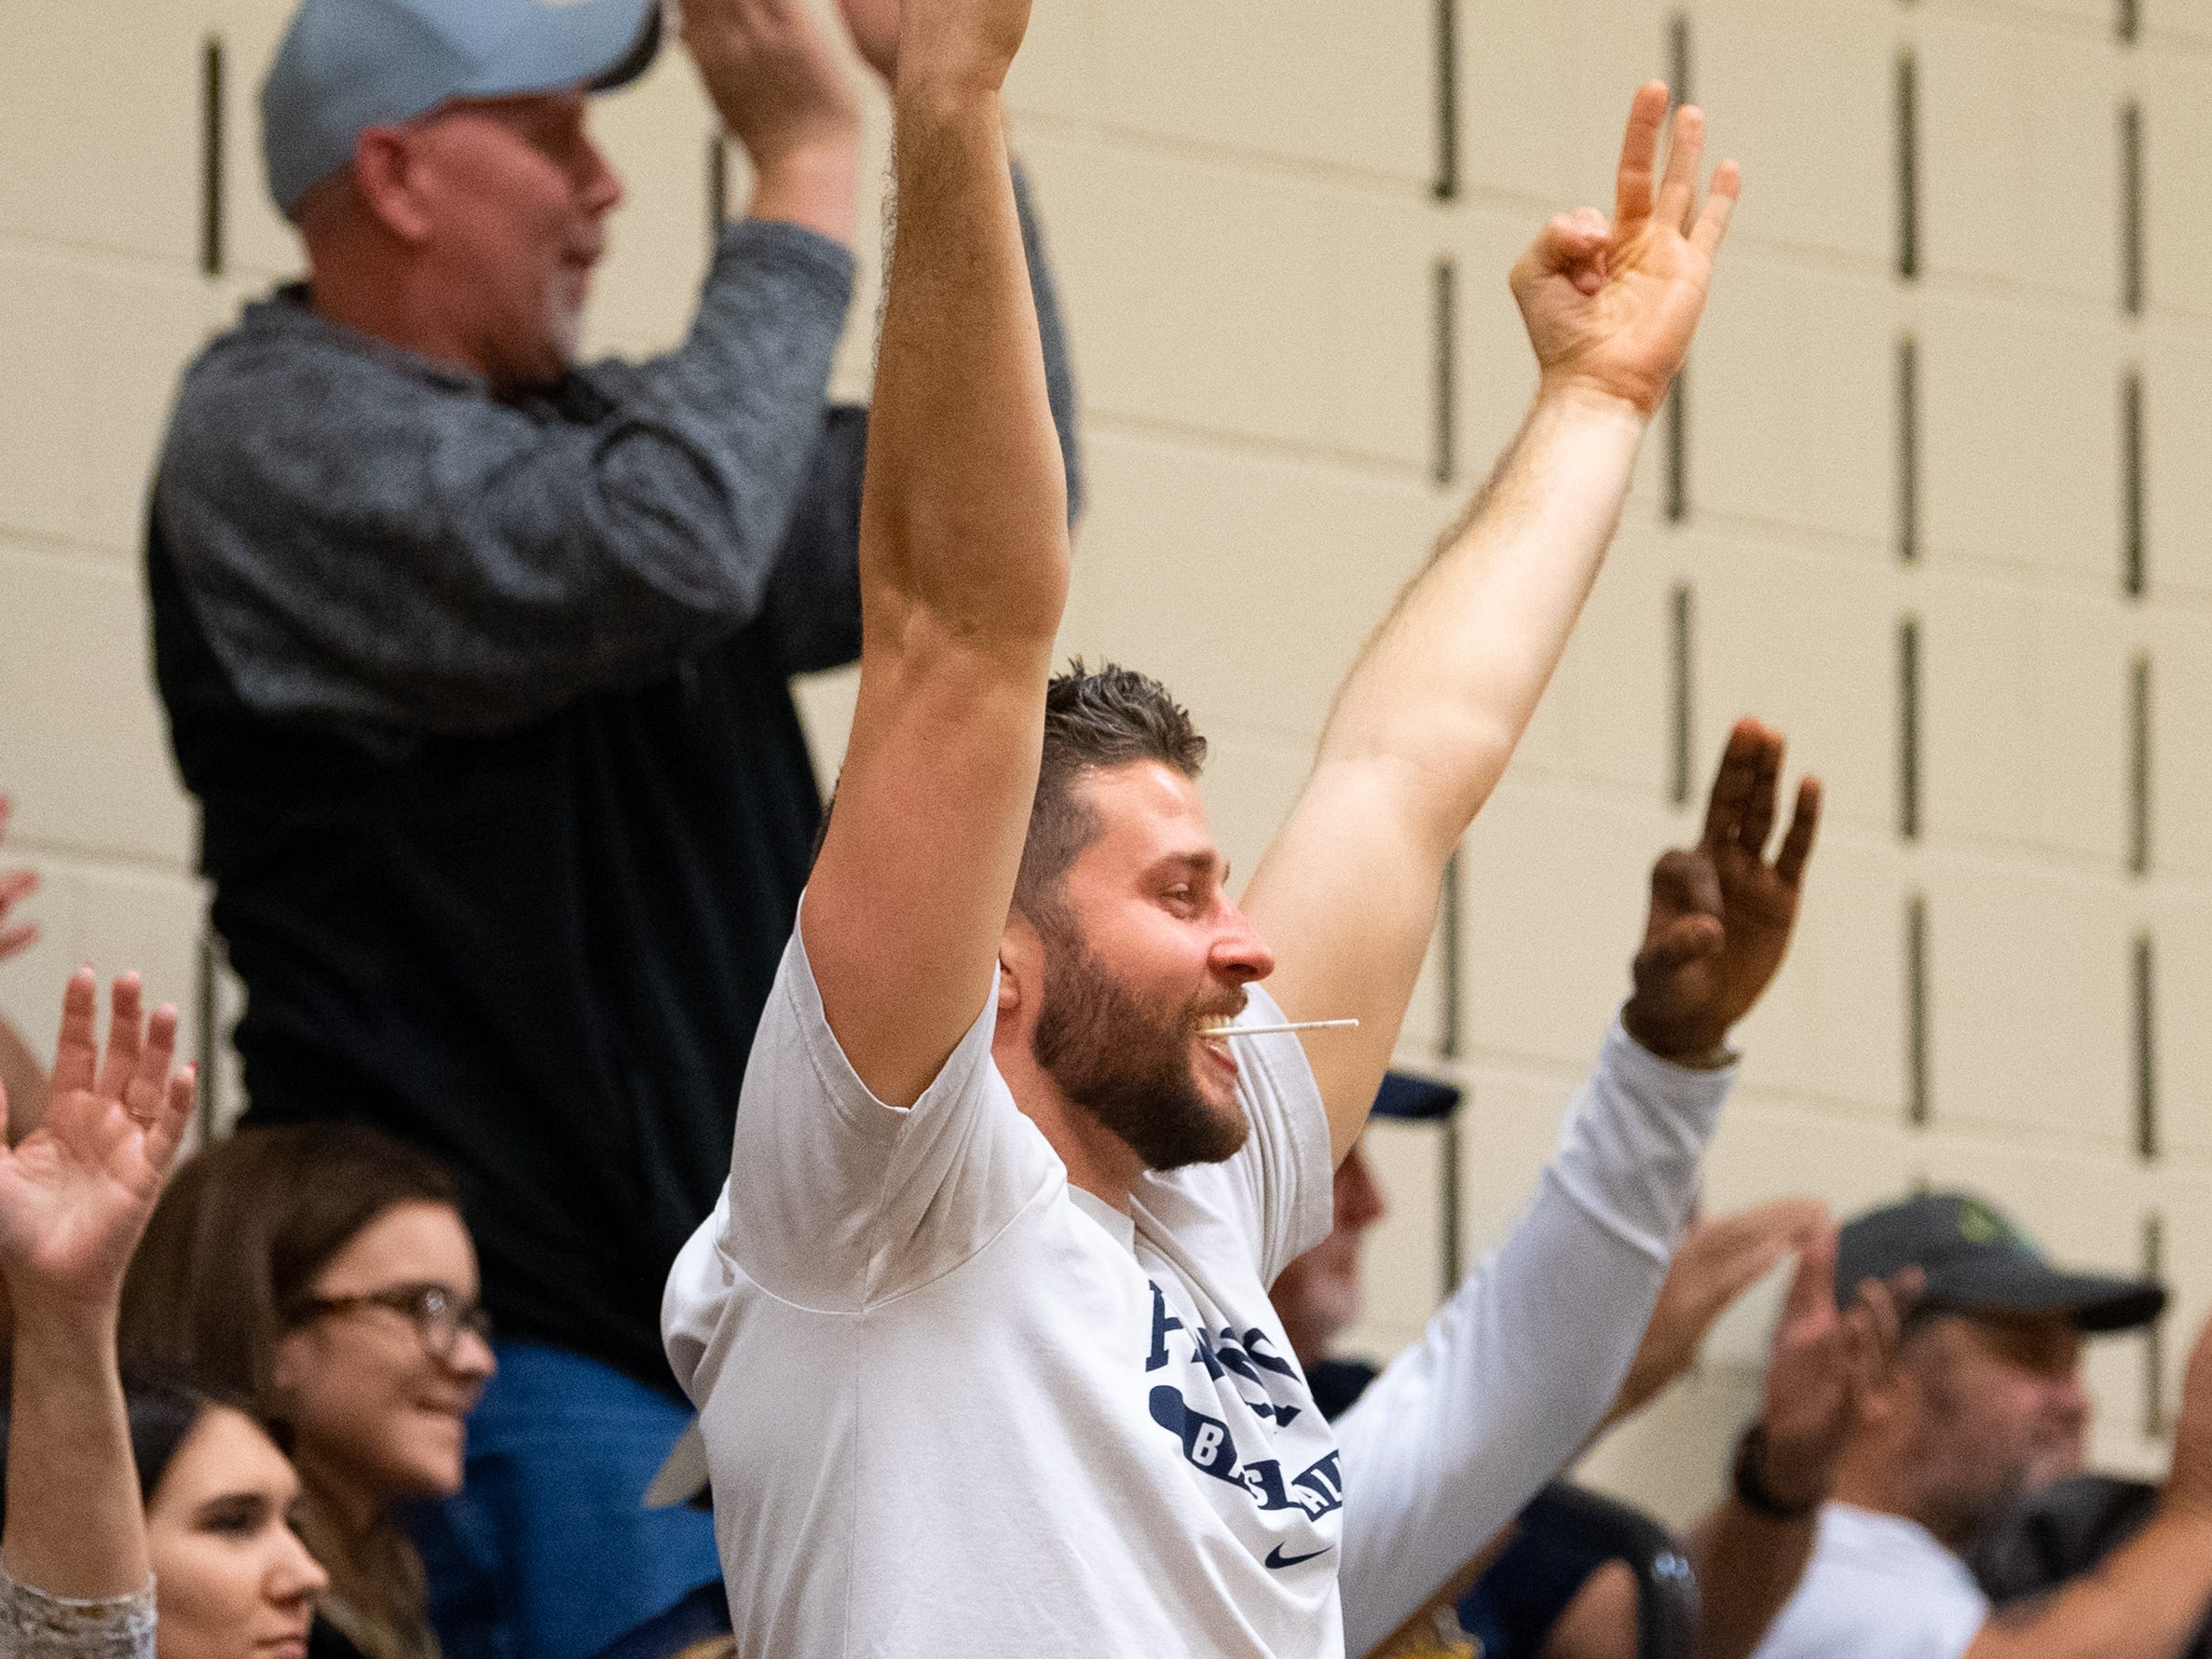 Eastern York fans celebrate a made three-pointer during the YAIAA boys' basketball game between Eastern York and West York, Friday, January 25, 2019. The Golden Knights defeated the Bulldogs 59 to 55.